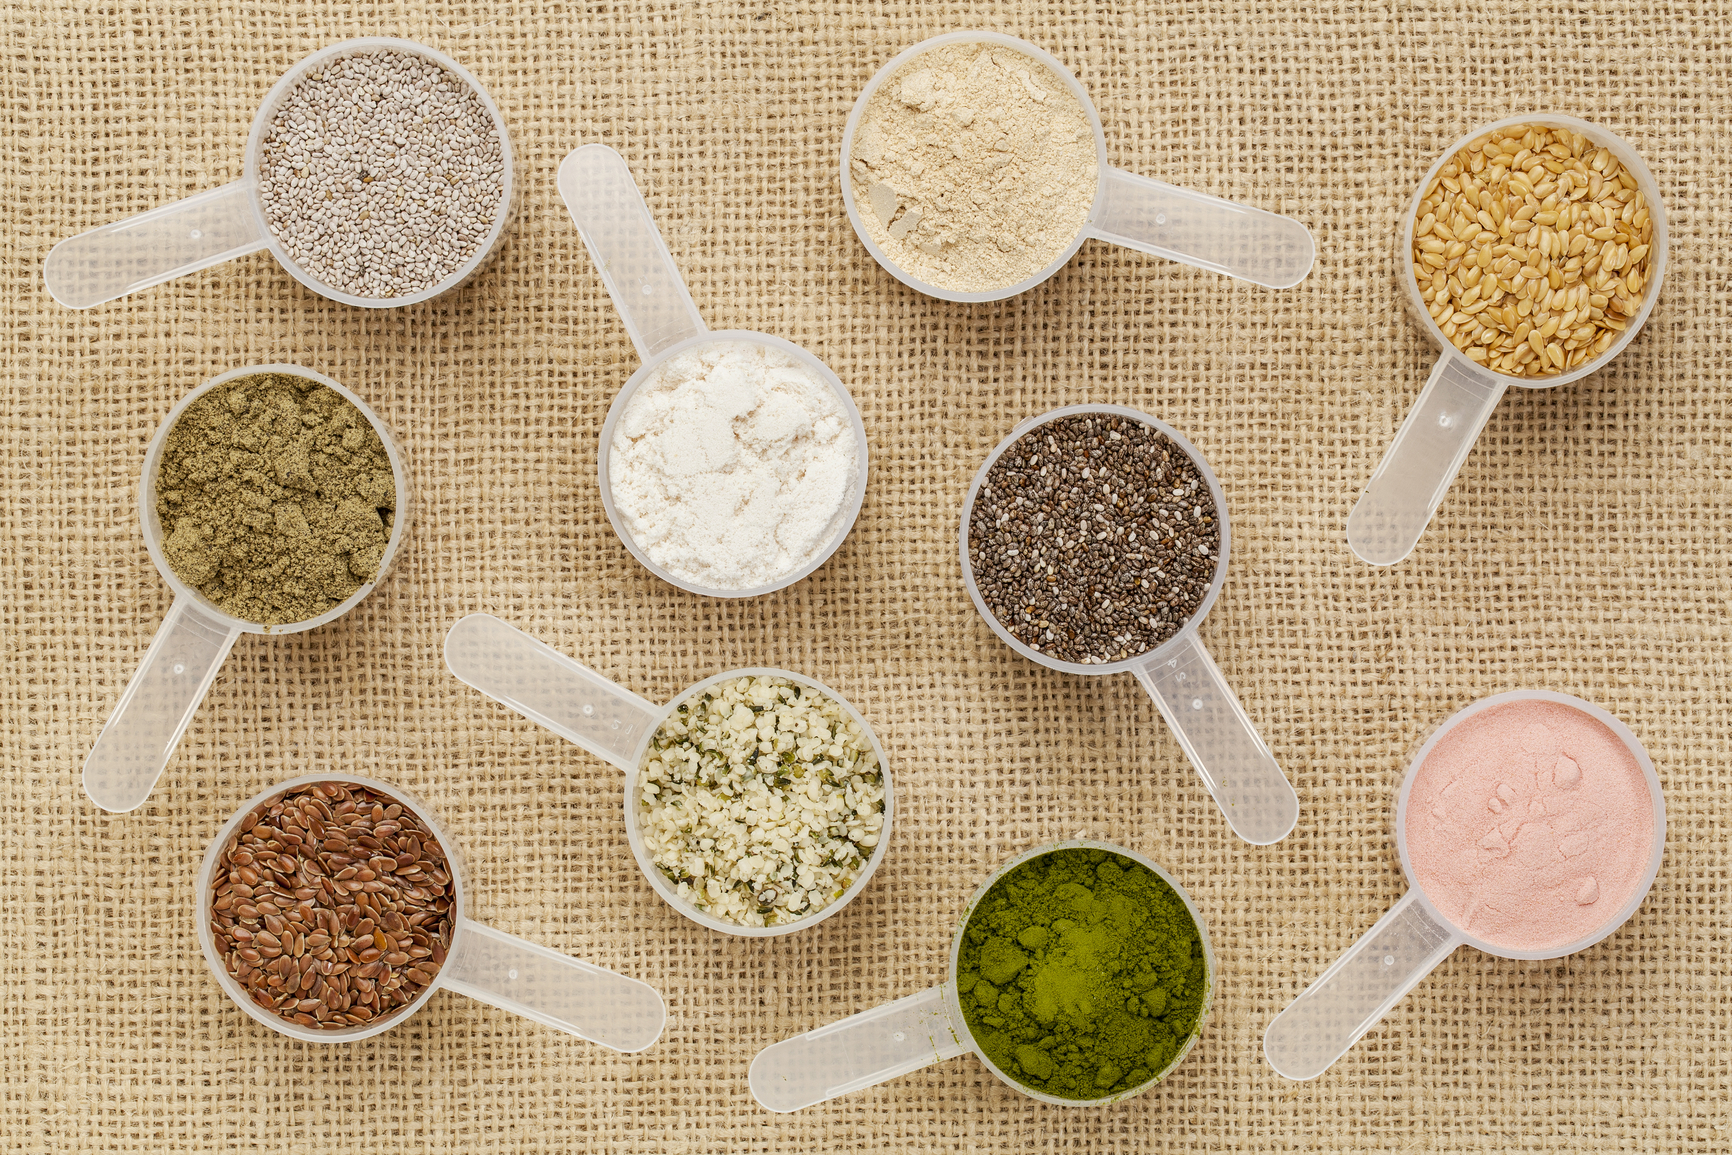 scoops of superfood - healthy seeds and powders (white and black chia, flax, hemp, pomegranate fruit powder, wheatgrass, hemp and whey protein, maca root) on canvas